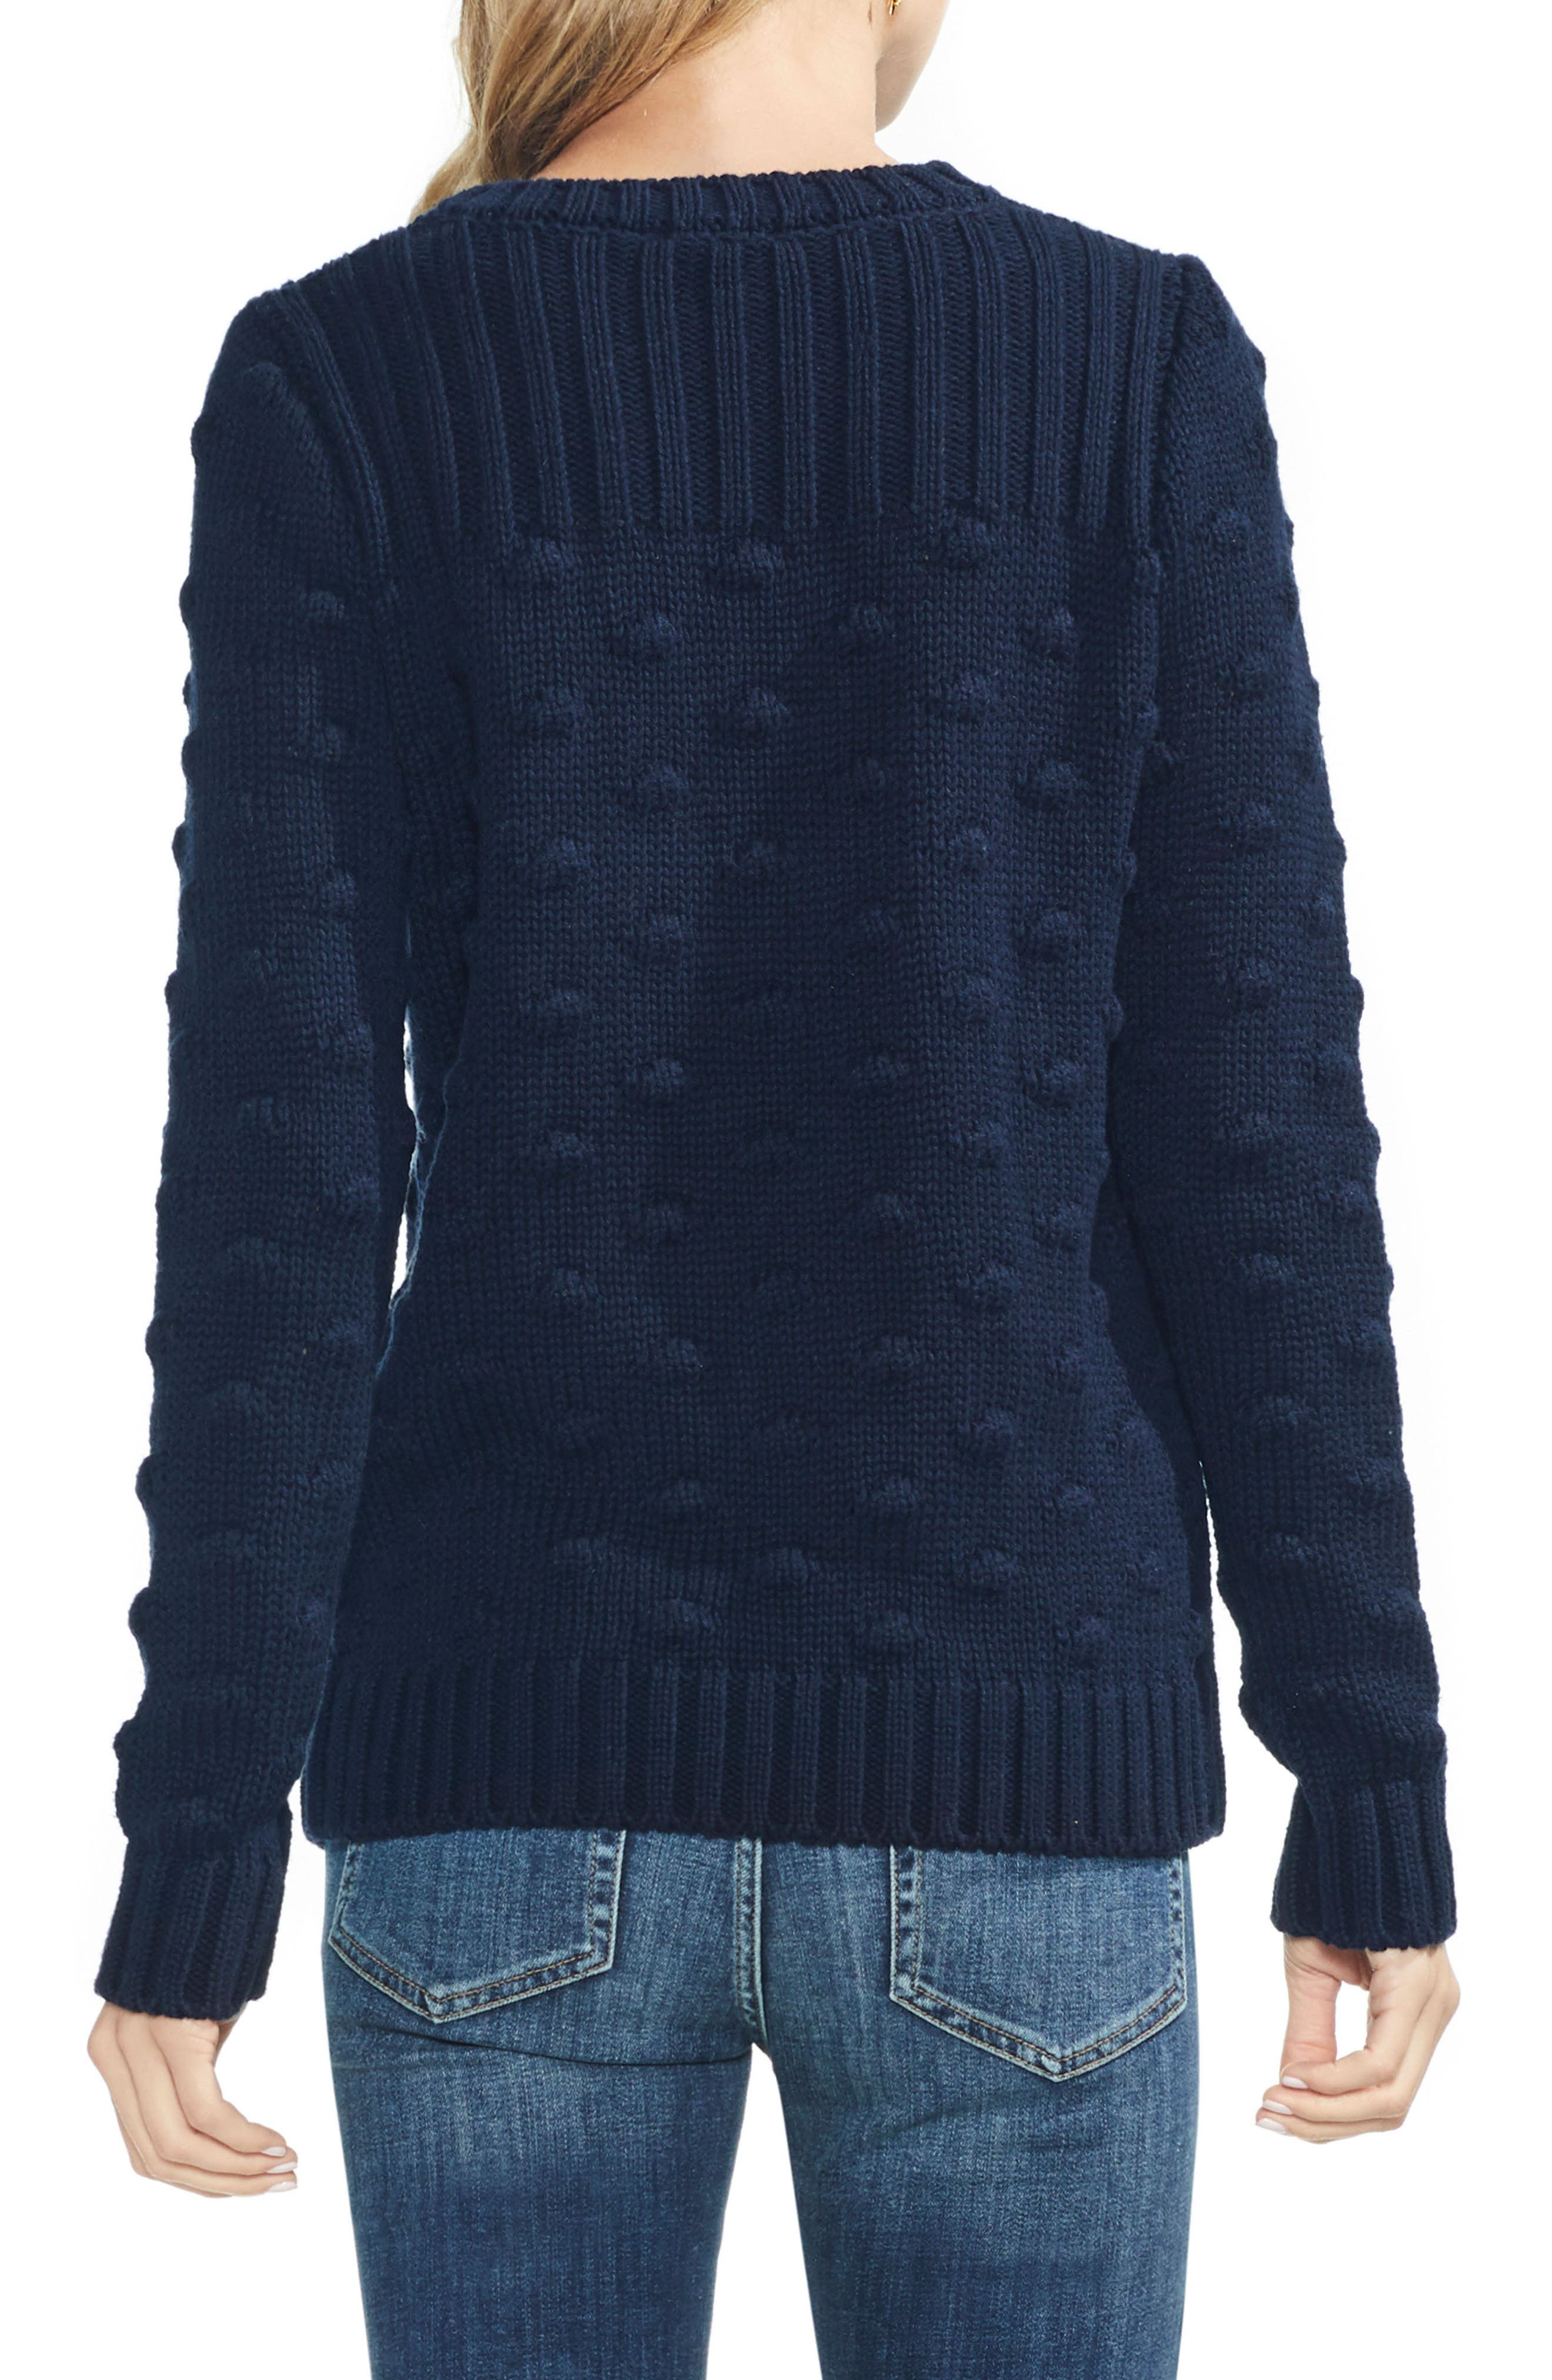 Vince Camto Popcorn Stitch Cotton Sweater,                             Alternate thumbnail 2, color,                             CLASSIC NAVY